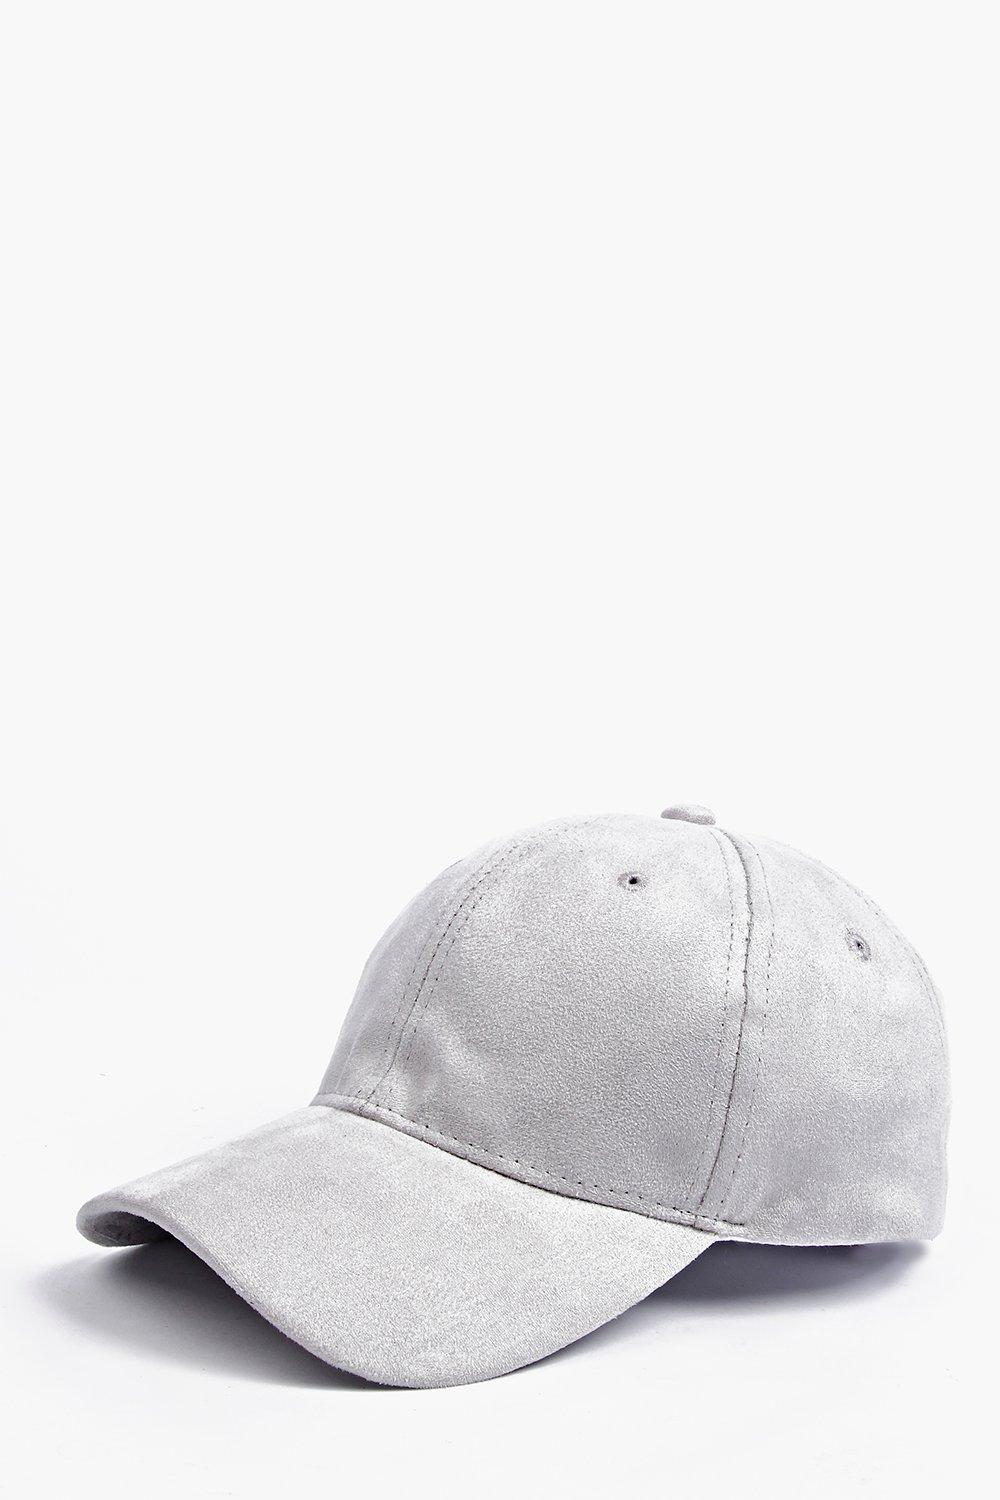 Grey Faux Suede Baseball Cap. Hover to zoom d1b6cee651f